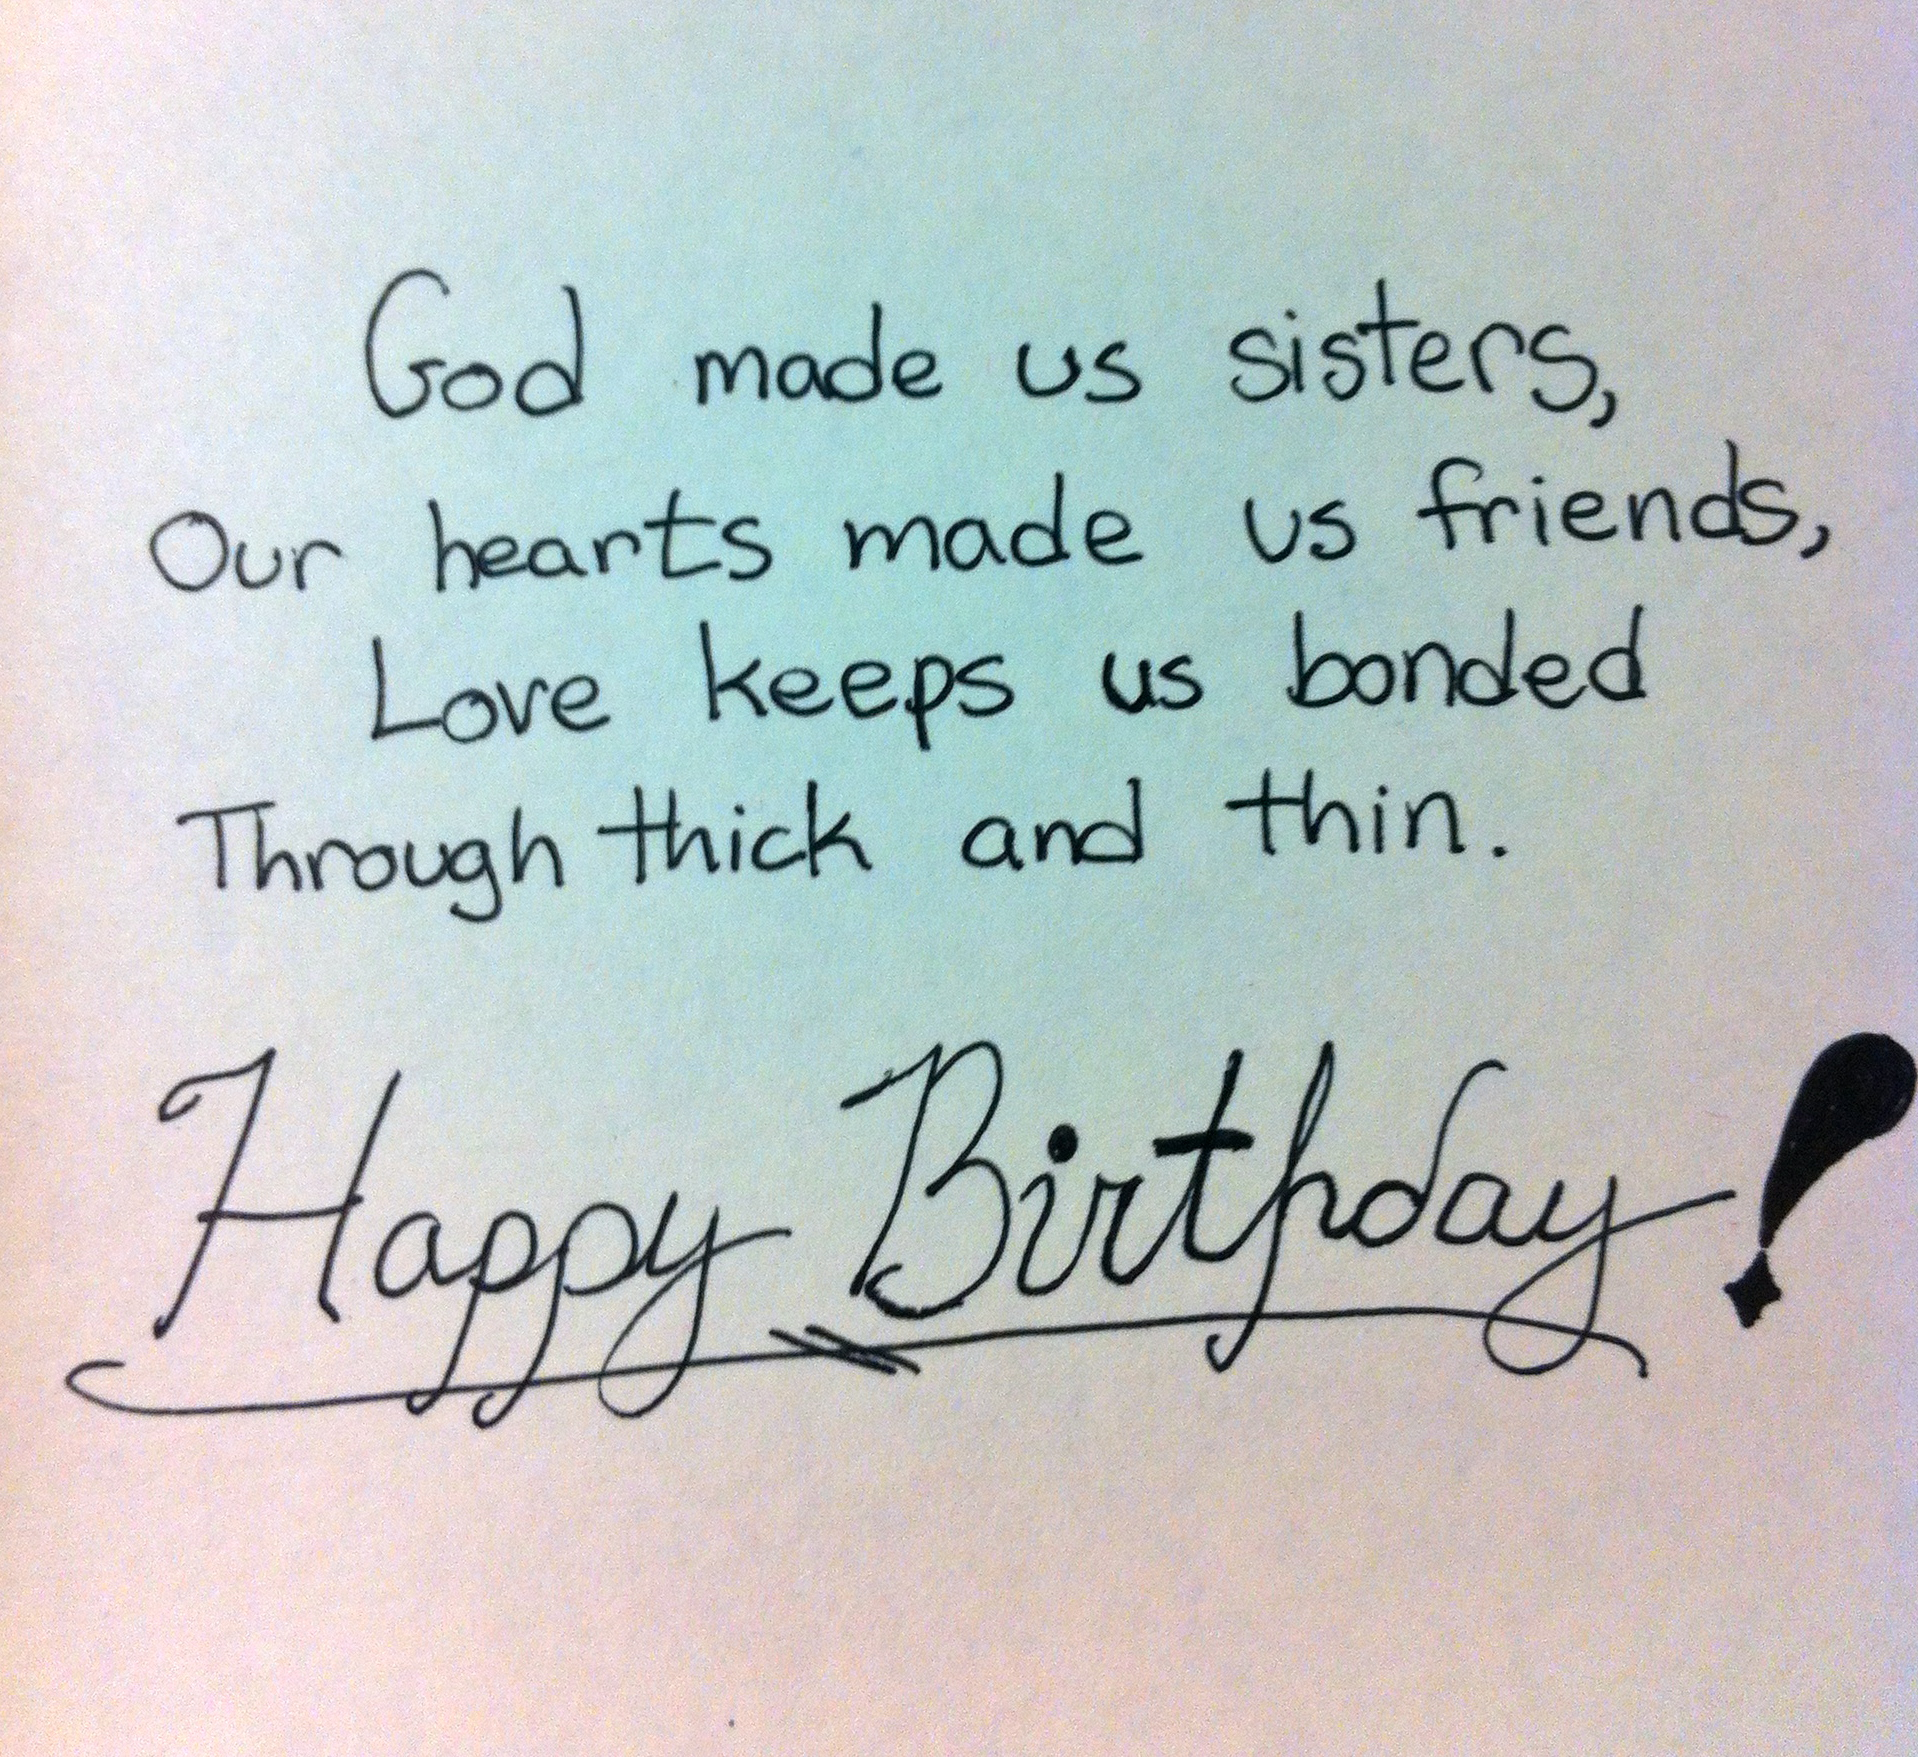 Quotes About Birthday Of Sister : Best birthday wishes for a sister studentschillout